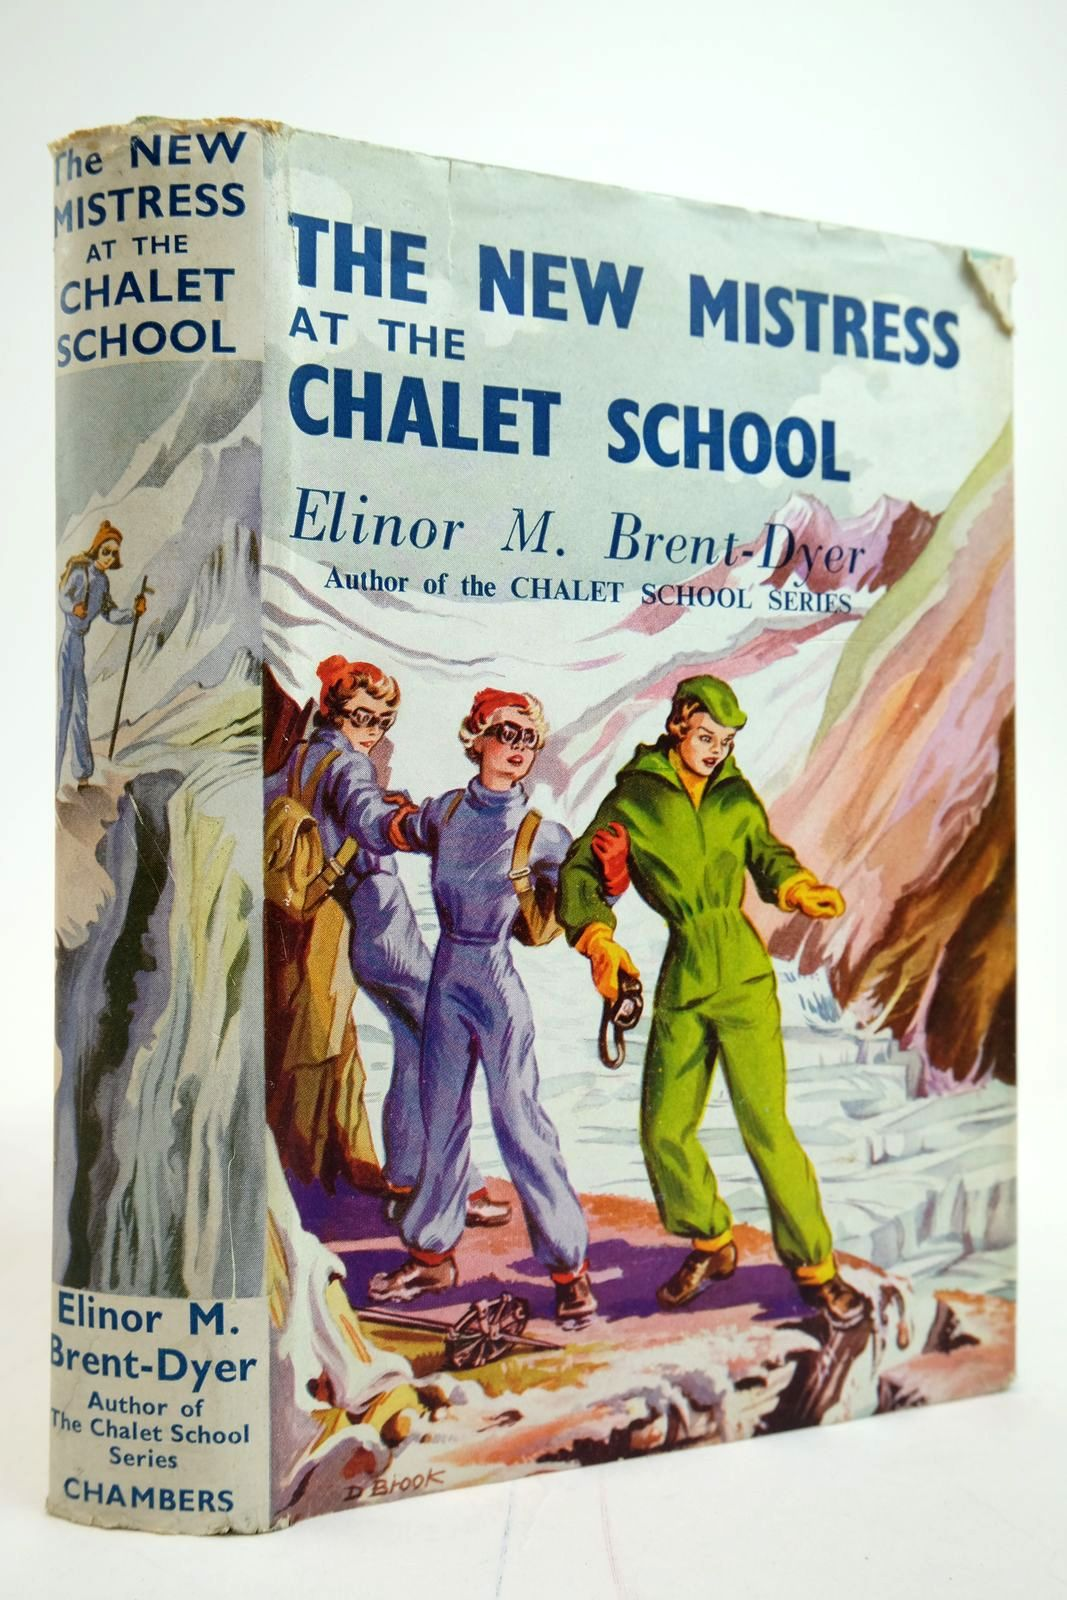 Photo of THE NEW MISTRESS AT THE CHALET SCHOOL written by Brent-Dyer, Elinor M. illustrated by Brook, D. published by W. & R. Chambers Limited (STOCK CODE: 2135312)  for sale by Stella & Rose's Books